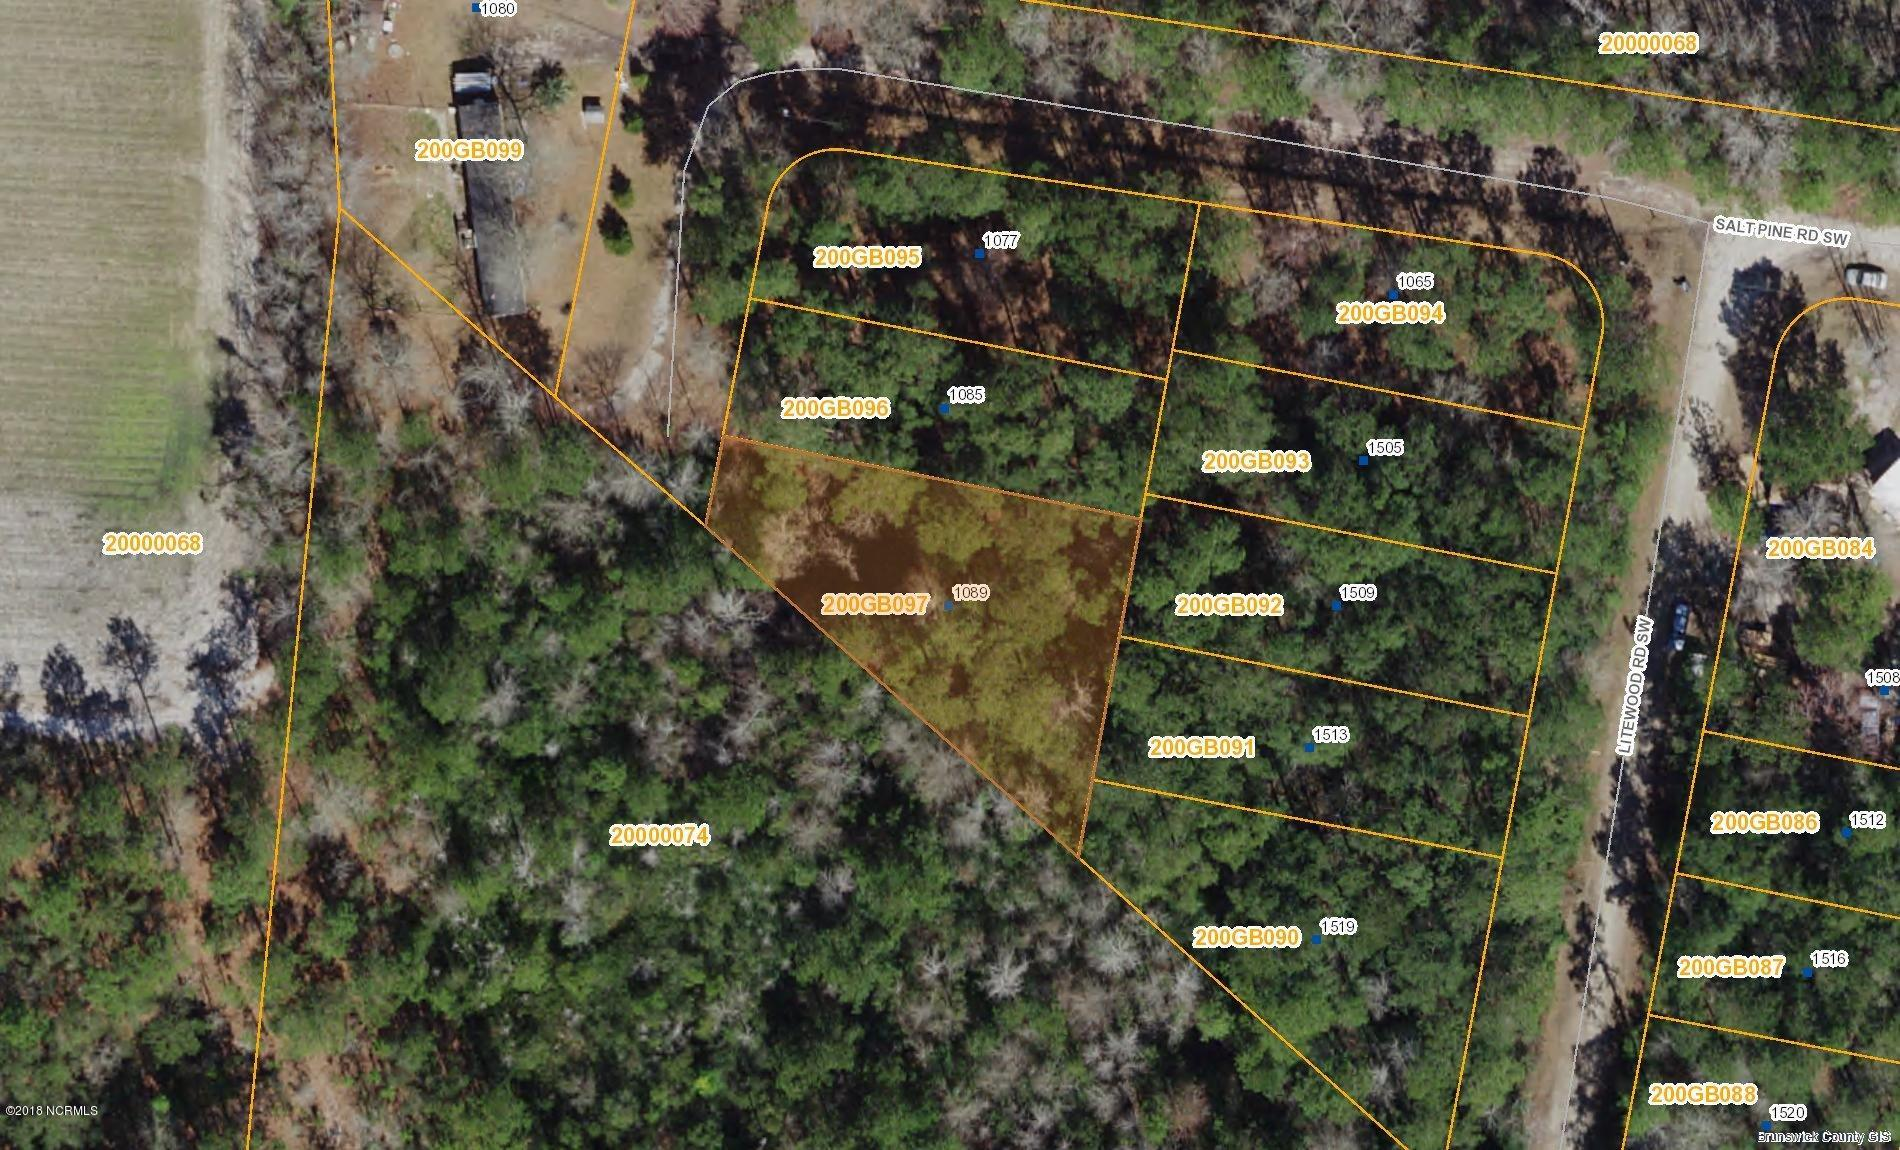 Carolina Plantations Real Estate - MLS Number: 30521747